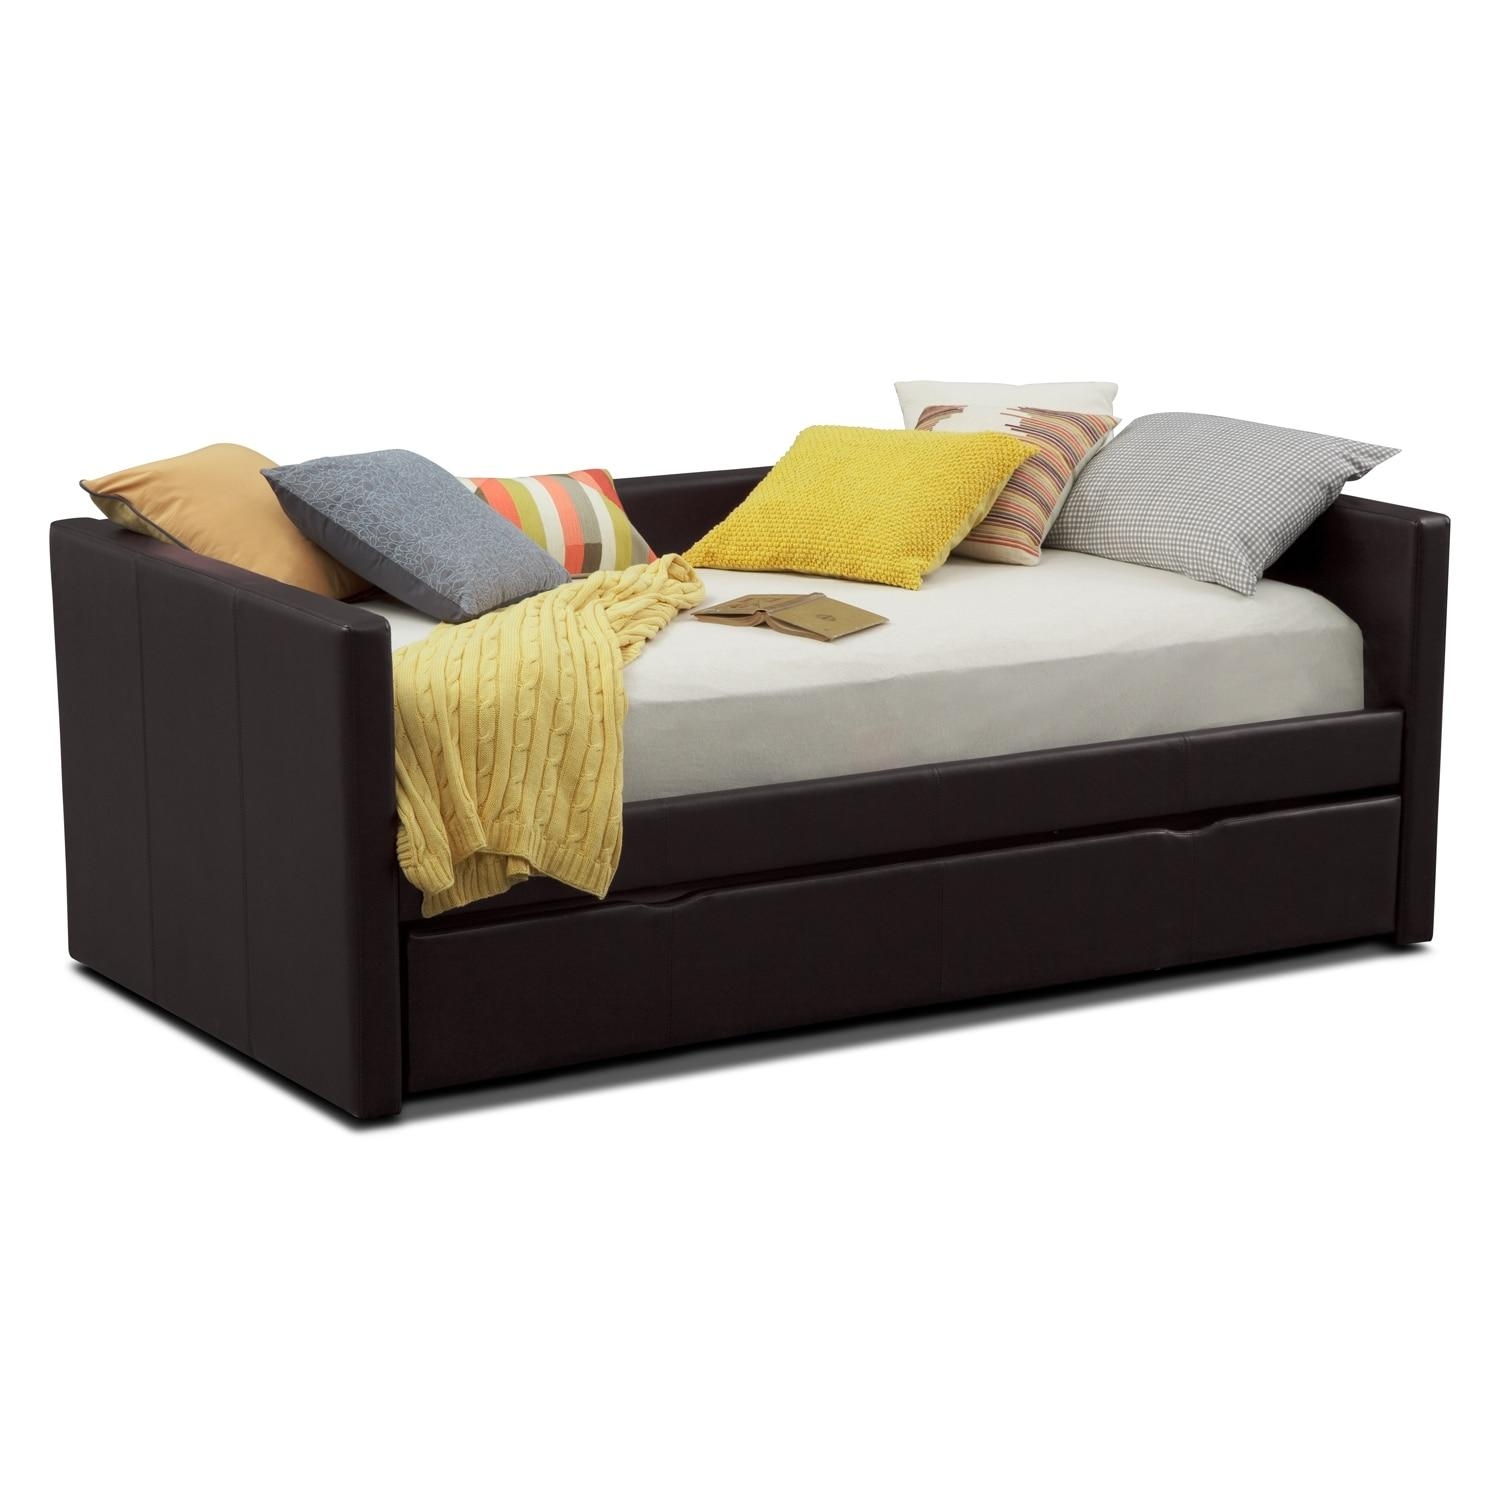 Daybeds & Trundle Beds | Bedroom Furniture | Value City Furniture Intended For Sofas With Trundle (View 19 of 20)